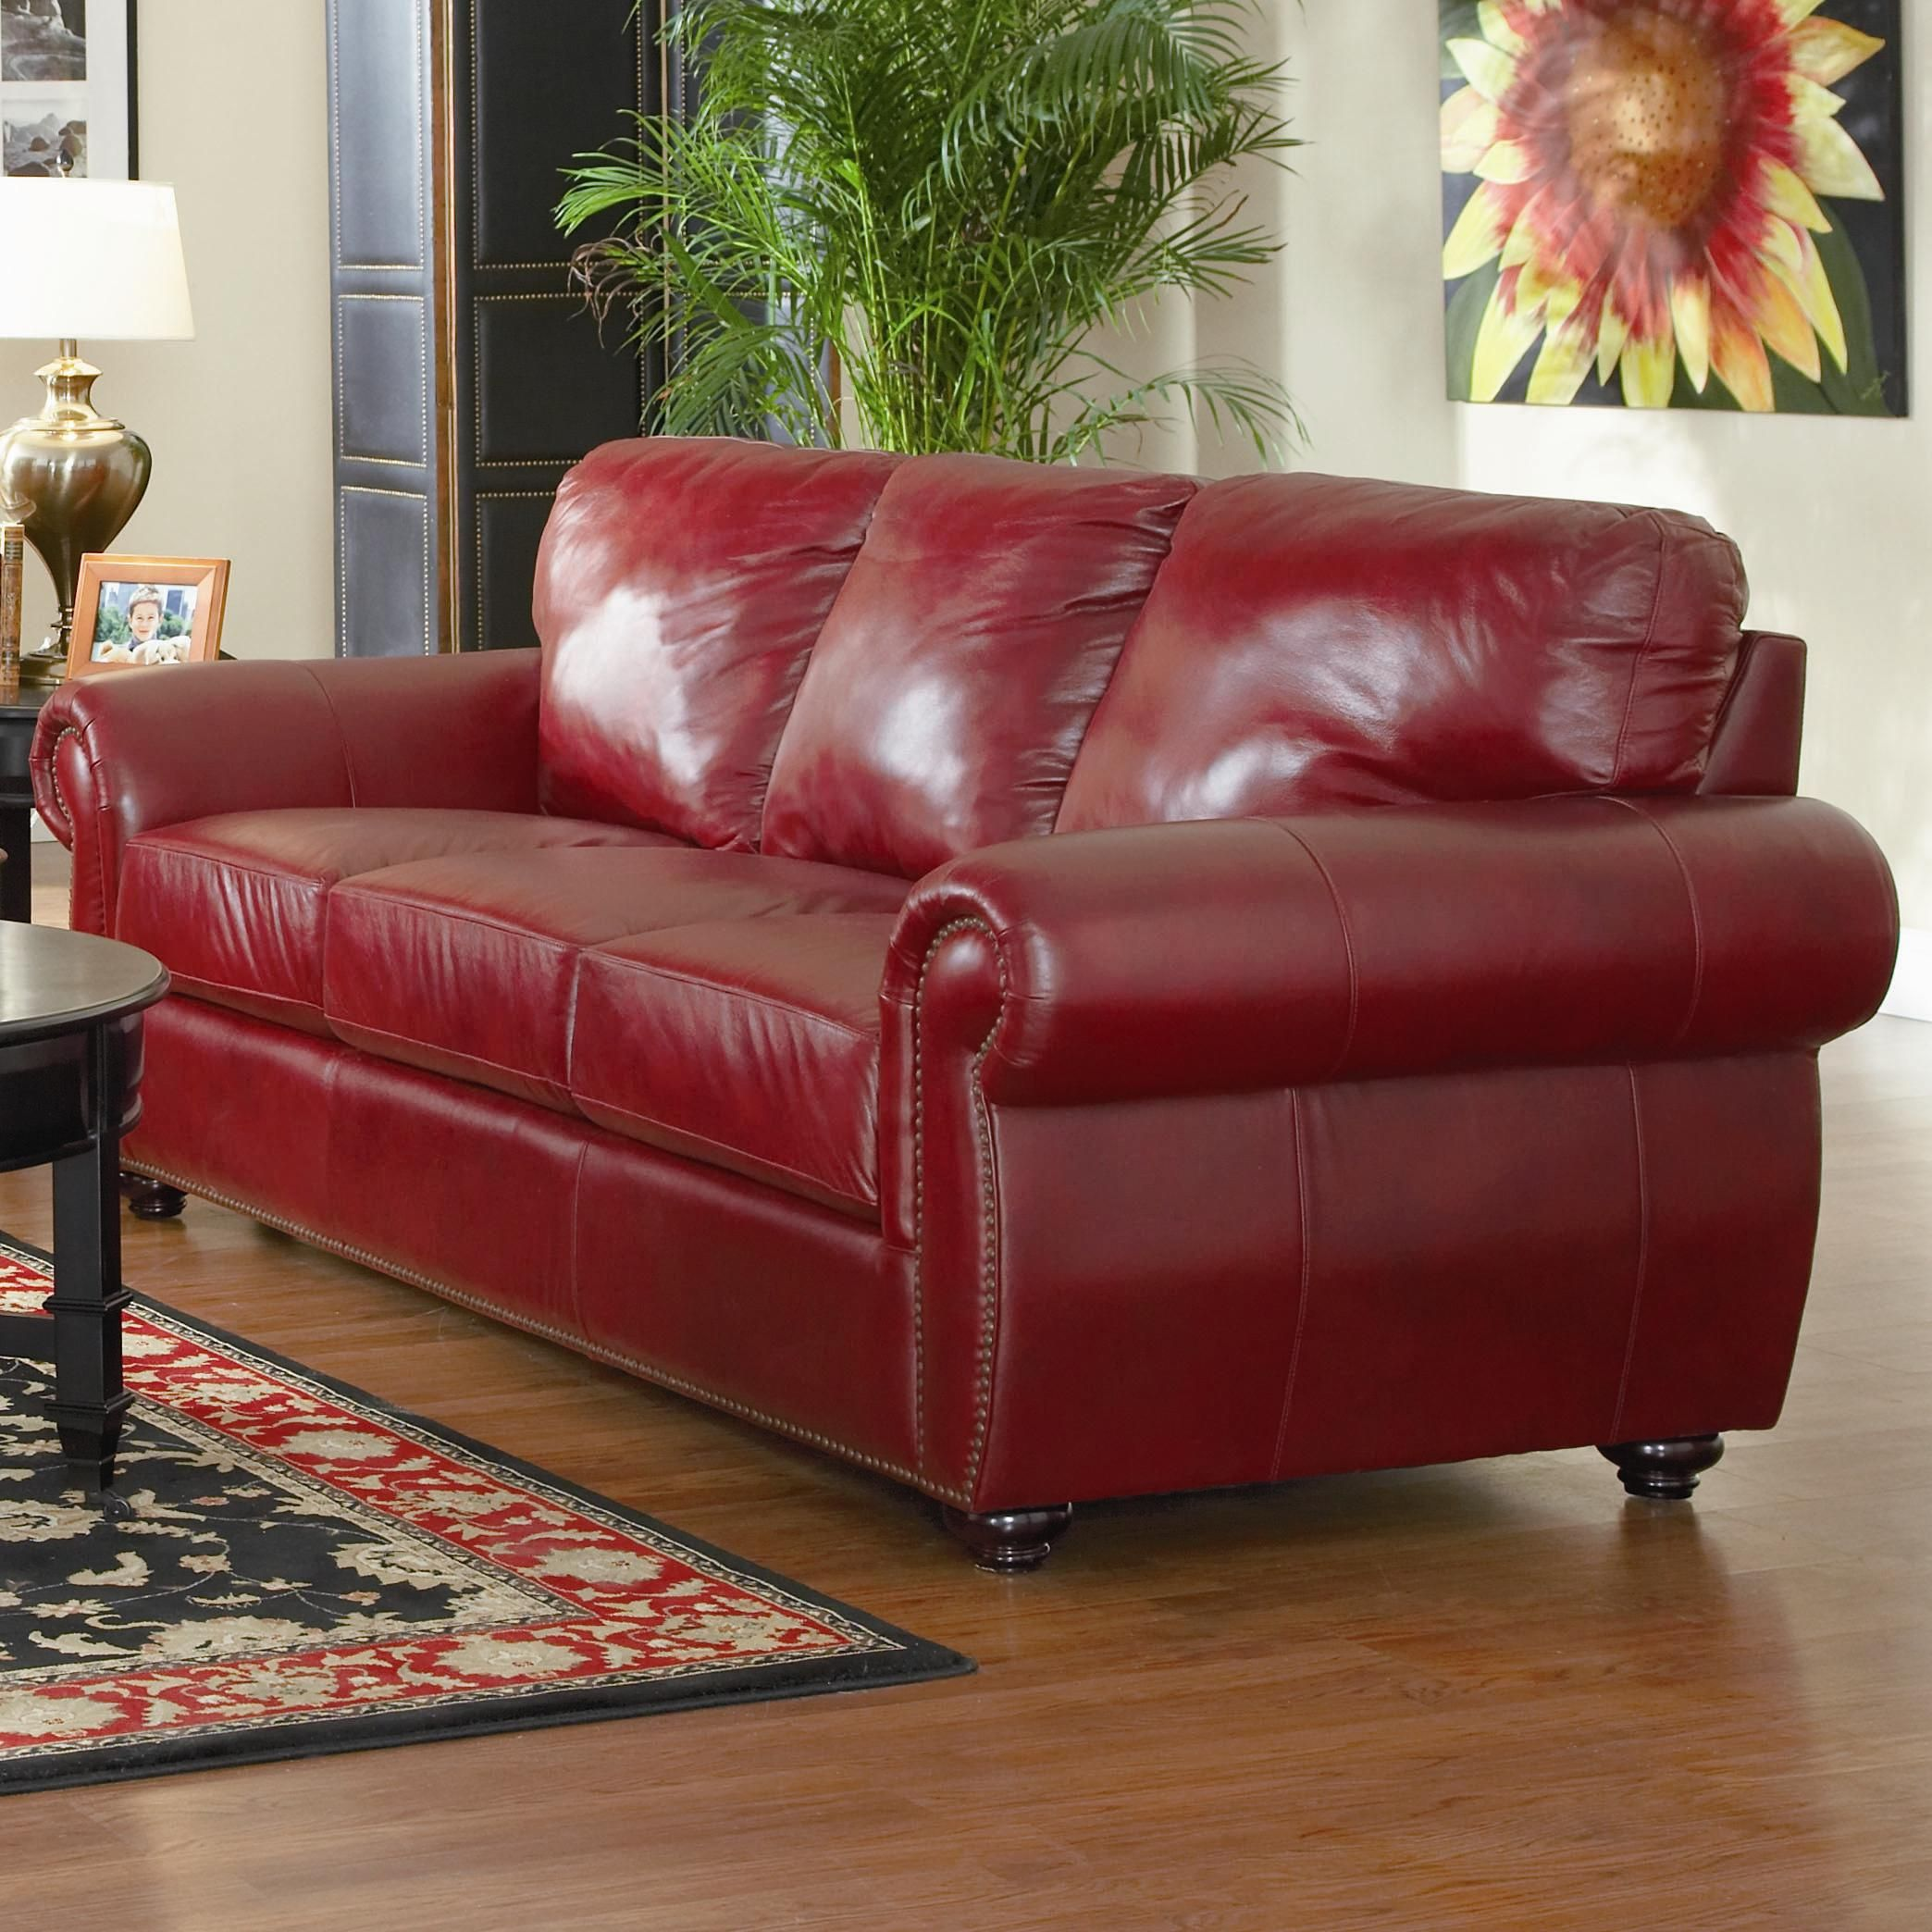 Chinese Red Leather Sofa Lewis Collection Burgundy Finish